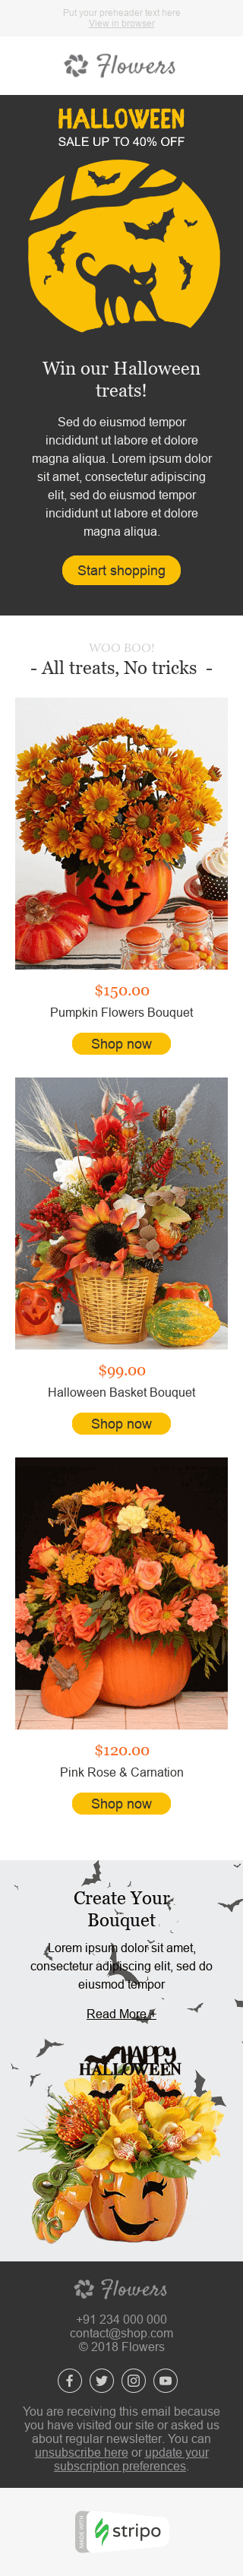 Stripo Gifts Flowers Holiday newsletter Halloween Autumn Enchantment email web